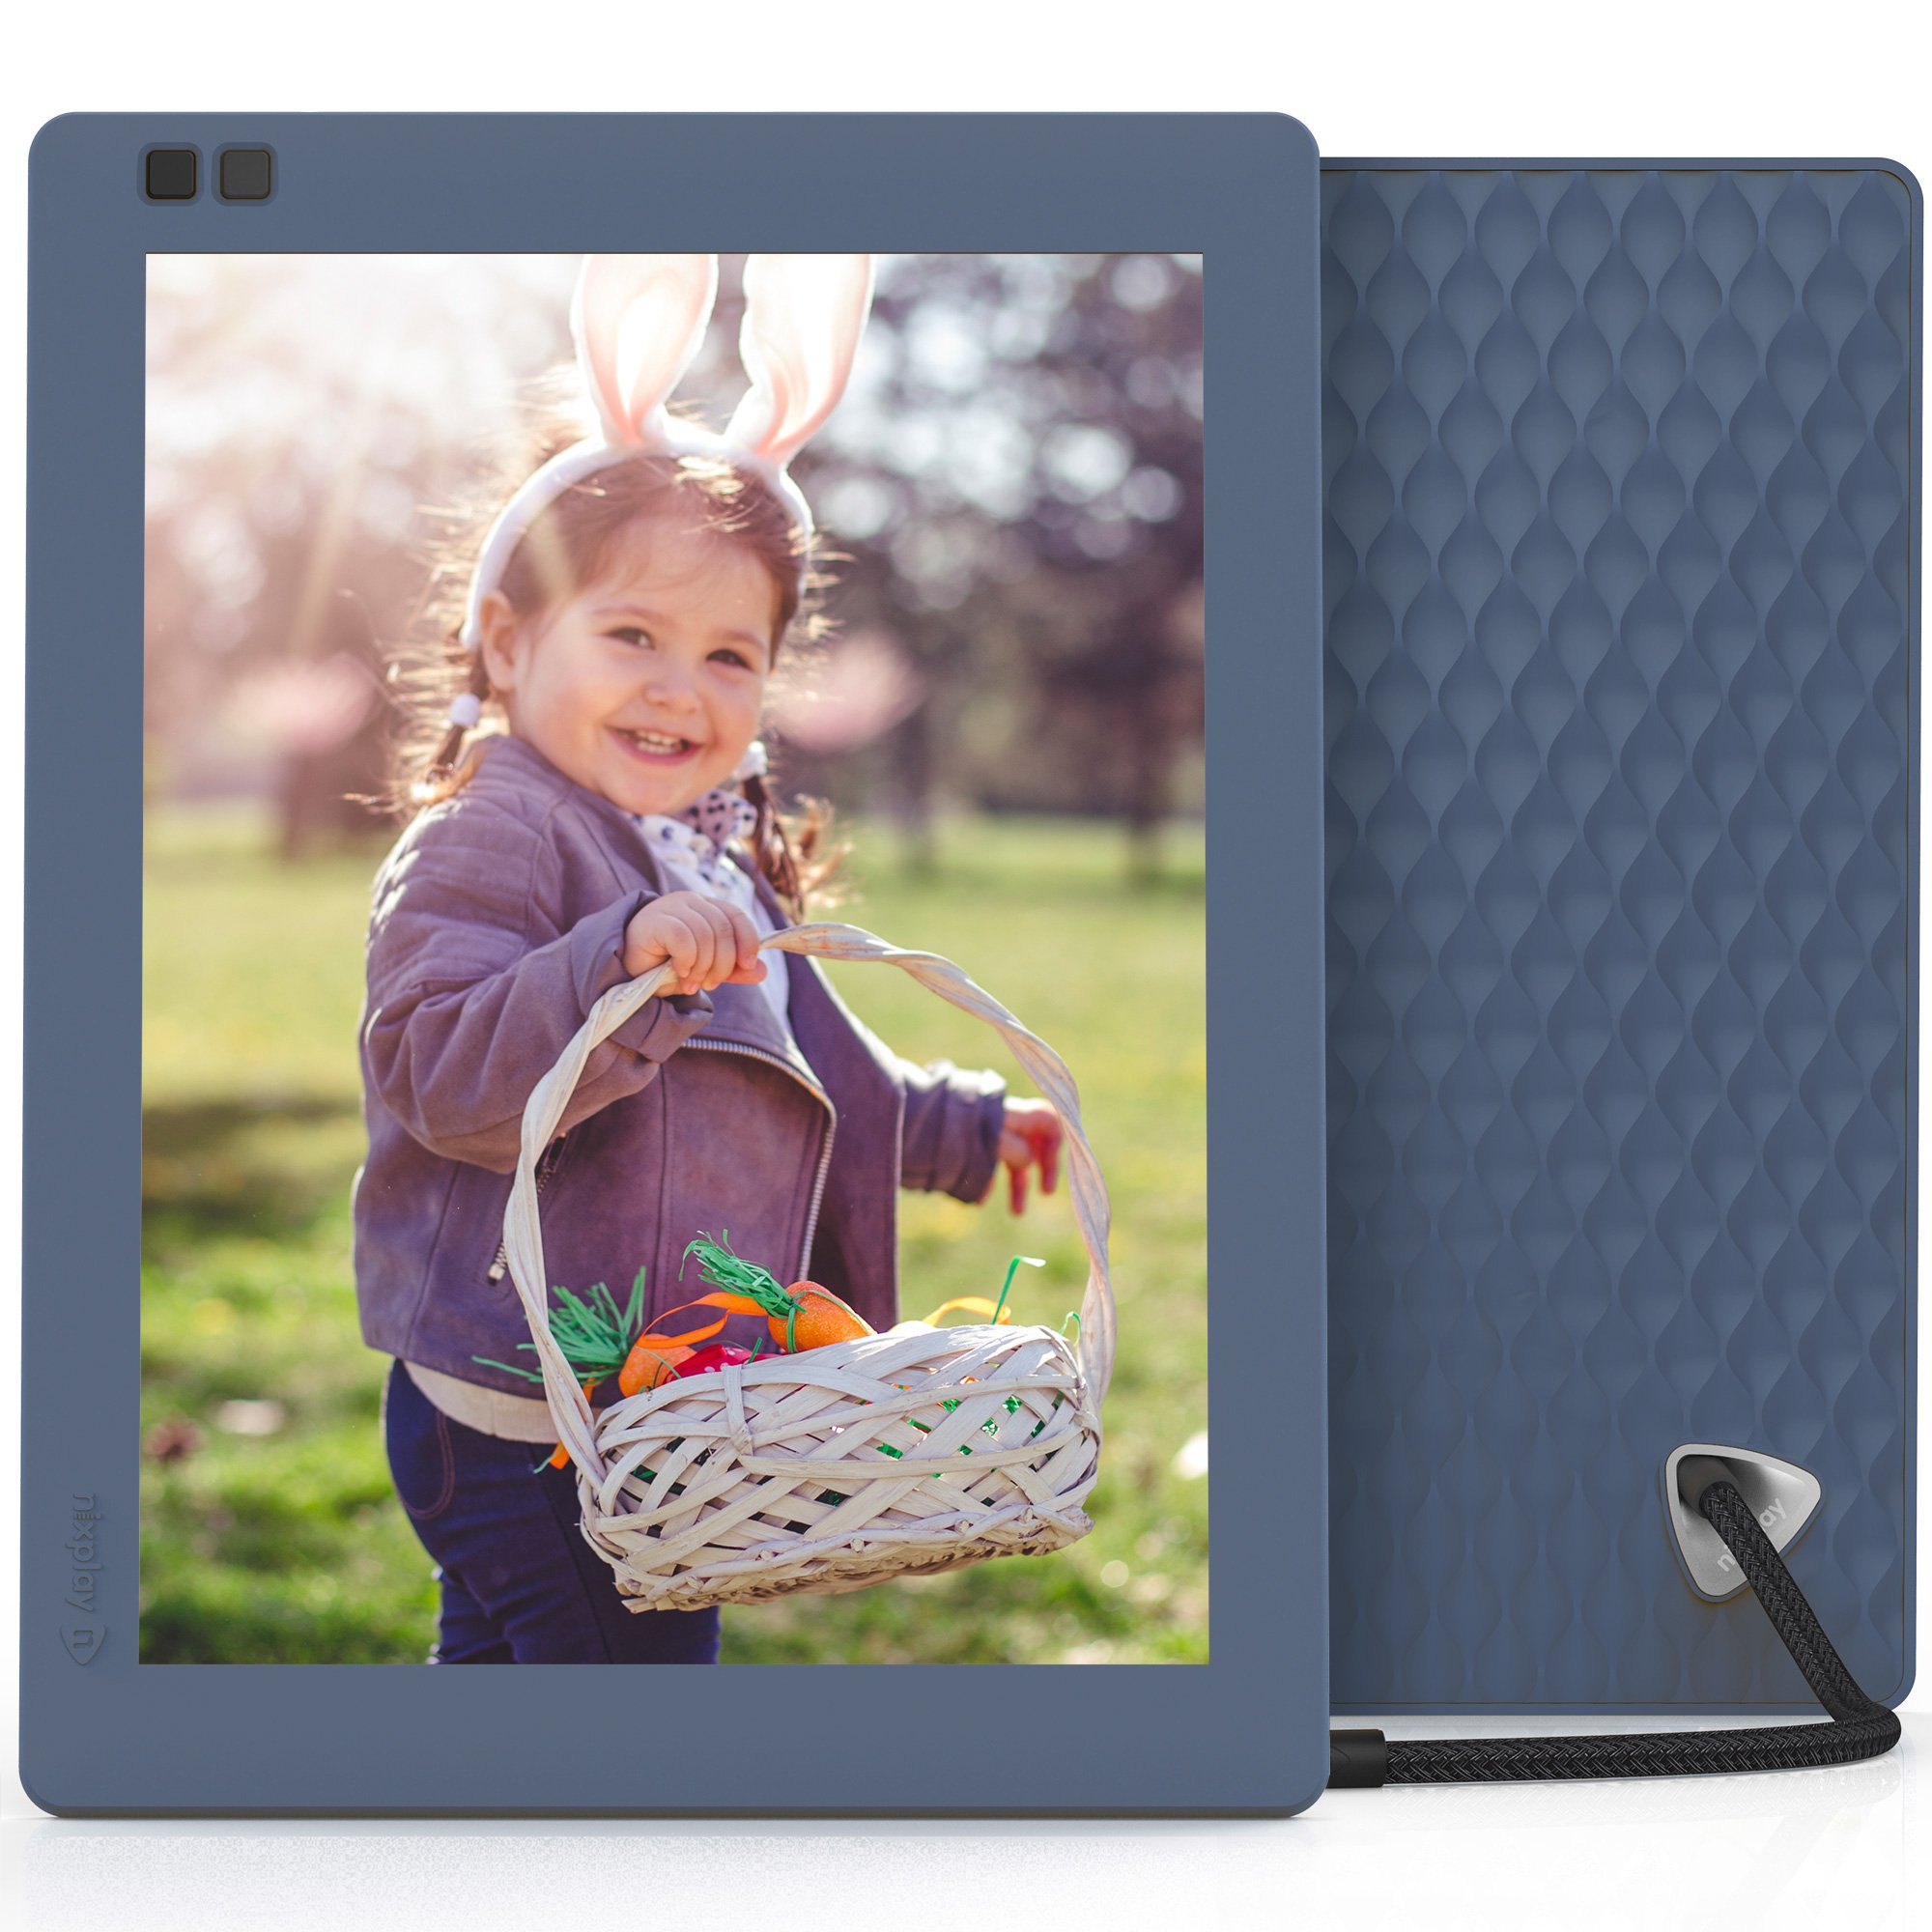 Nixplay Seed 10 Inch WiFi Cloud Digital Photo Frame with IPS Display, iPhone & Android App, Free 10GB Online Storage and Motion Sensor (Blue) by nixplay